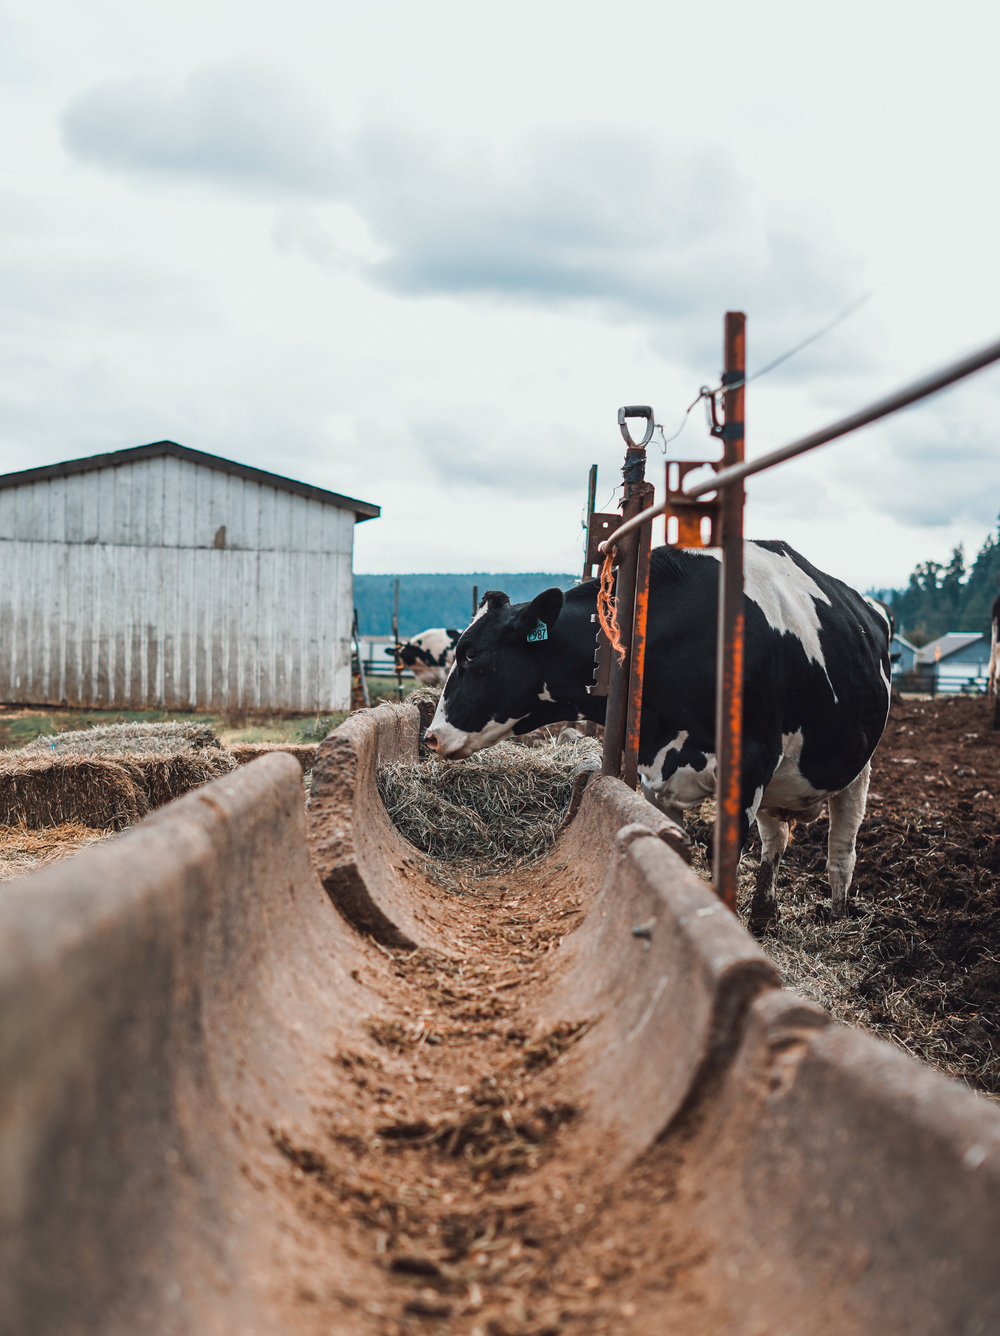 One of Ben Smith's Holstein cows. Photo by Courtney Baxter / TNC